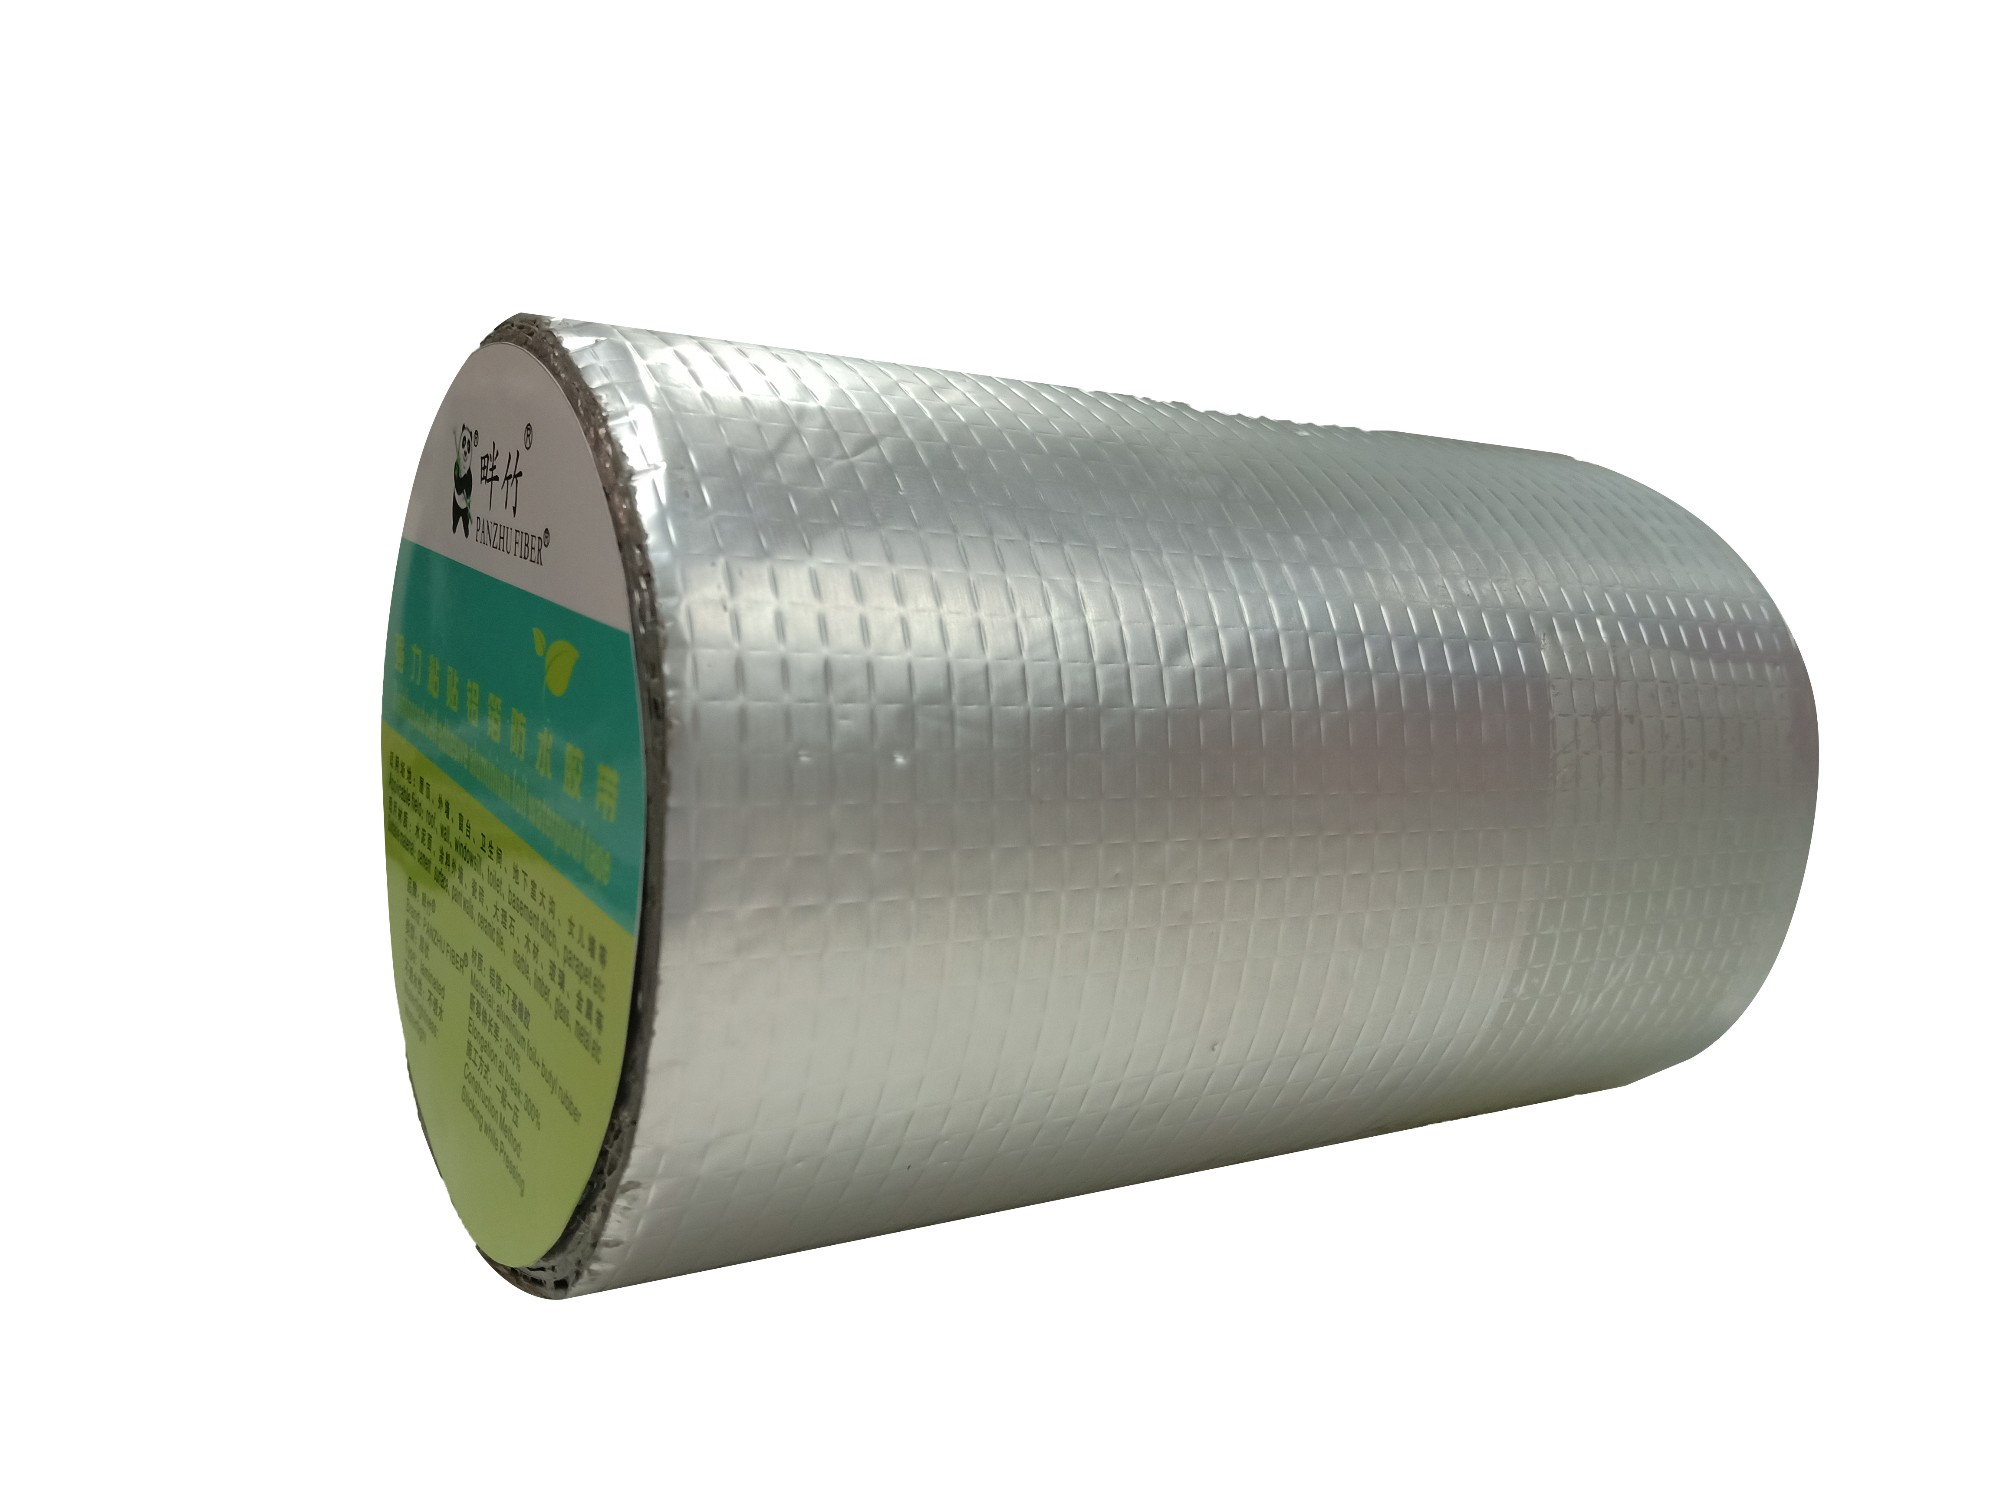 20cm Flashing butyl tape Manufacturers, 20cm Flashing butyl tape Factory, Supply 20cm Flashing butyl tape